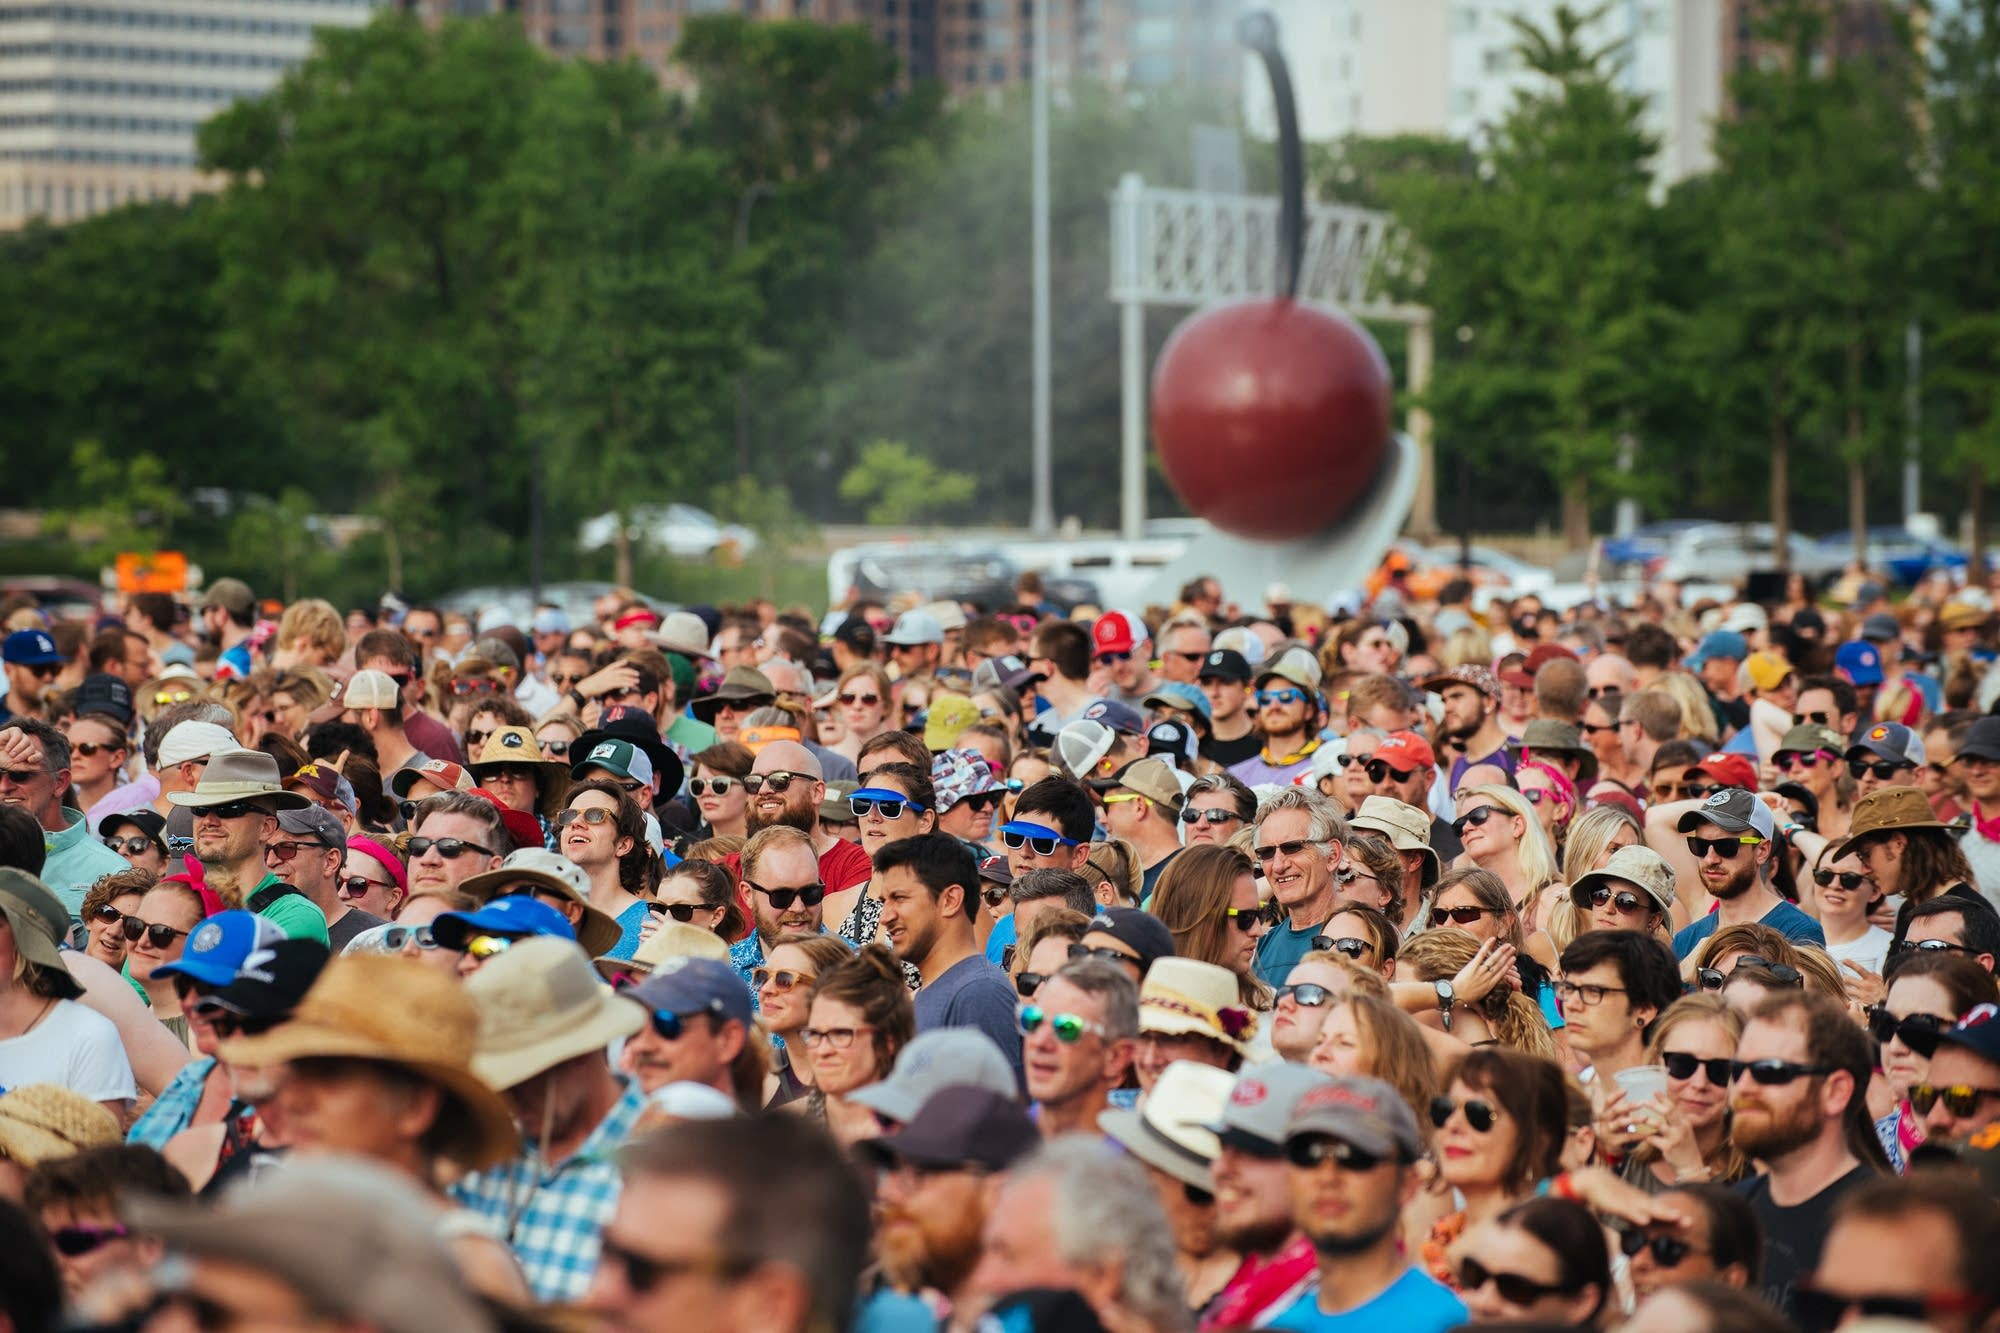 A crowd at Rock the Garden 2018.